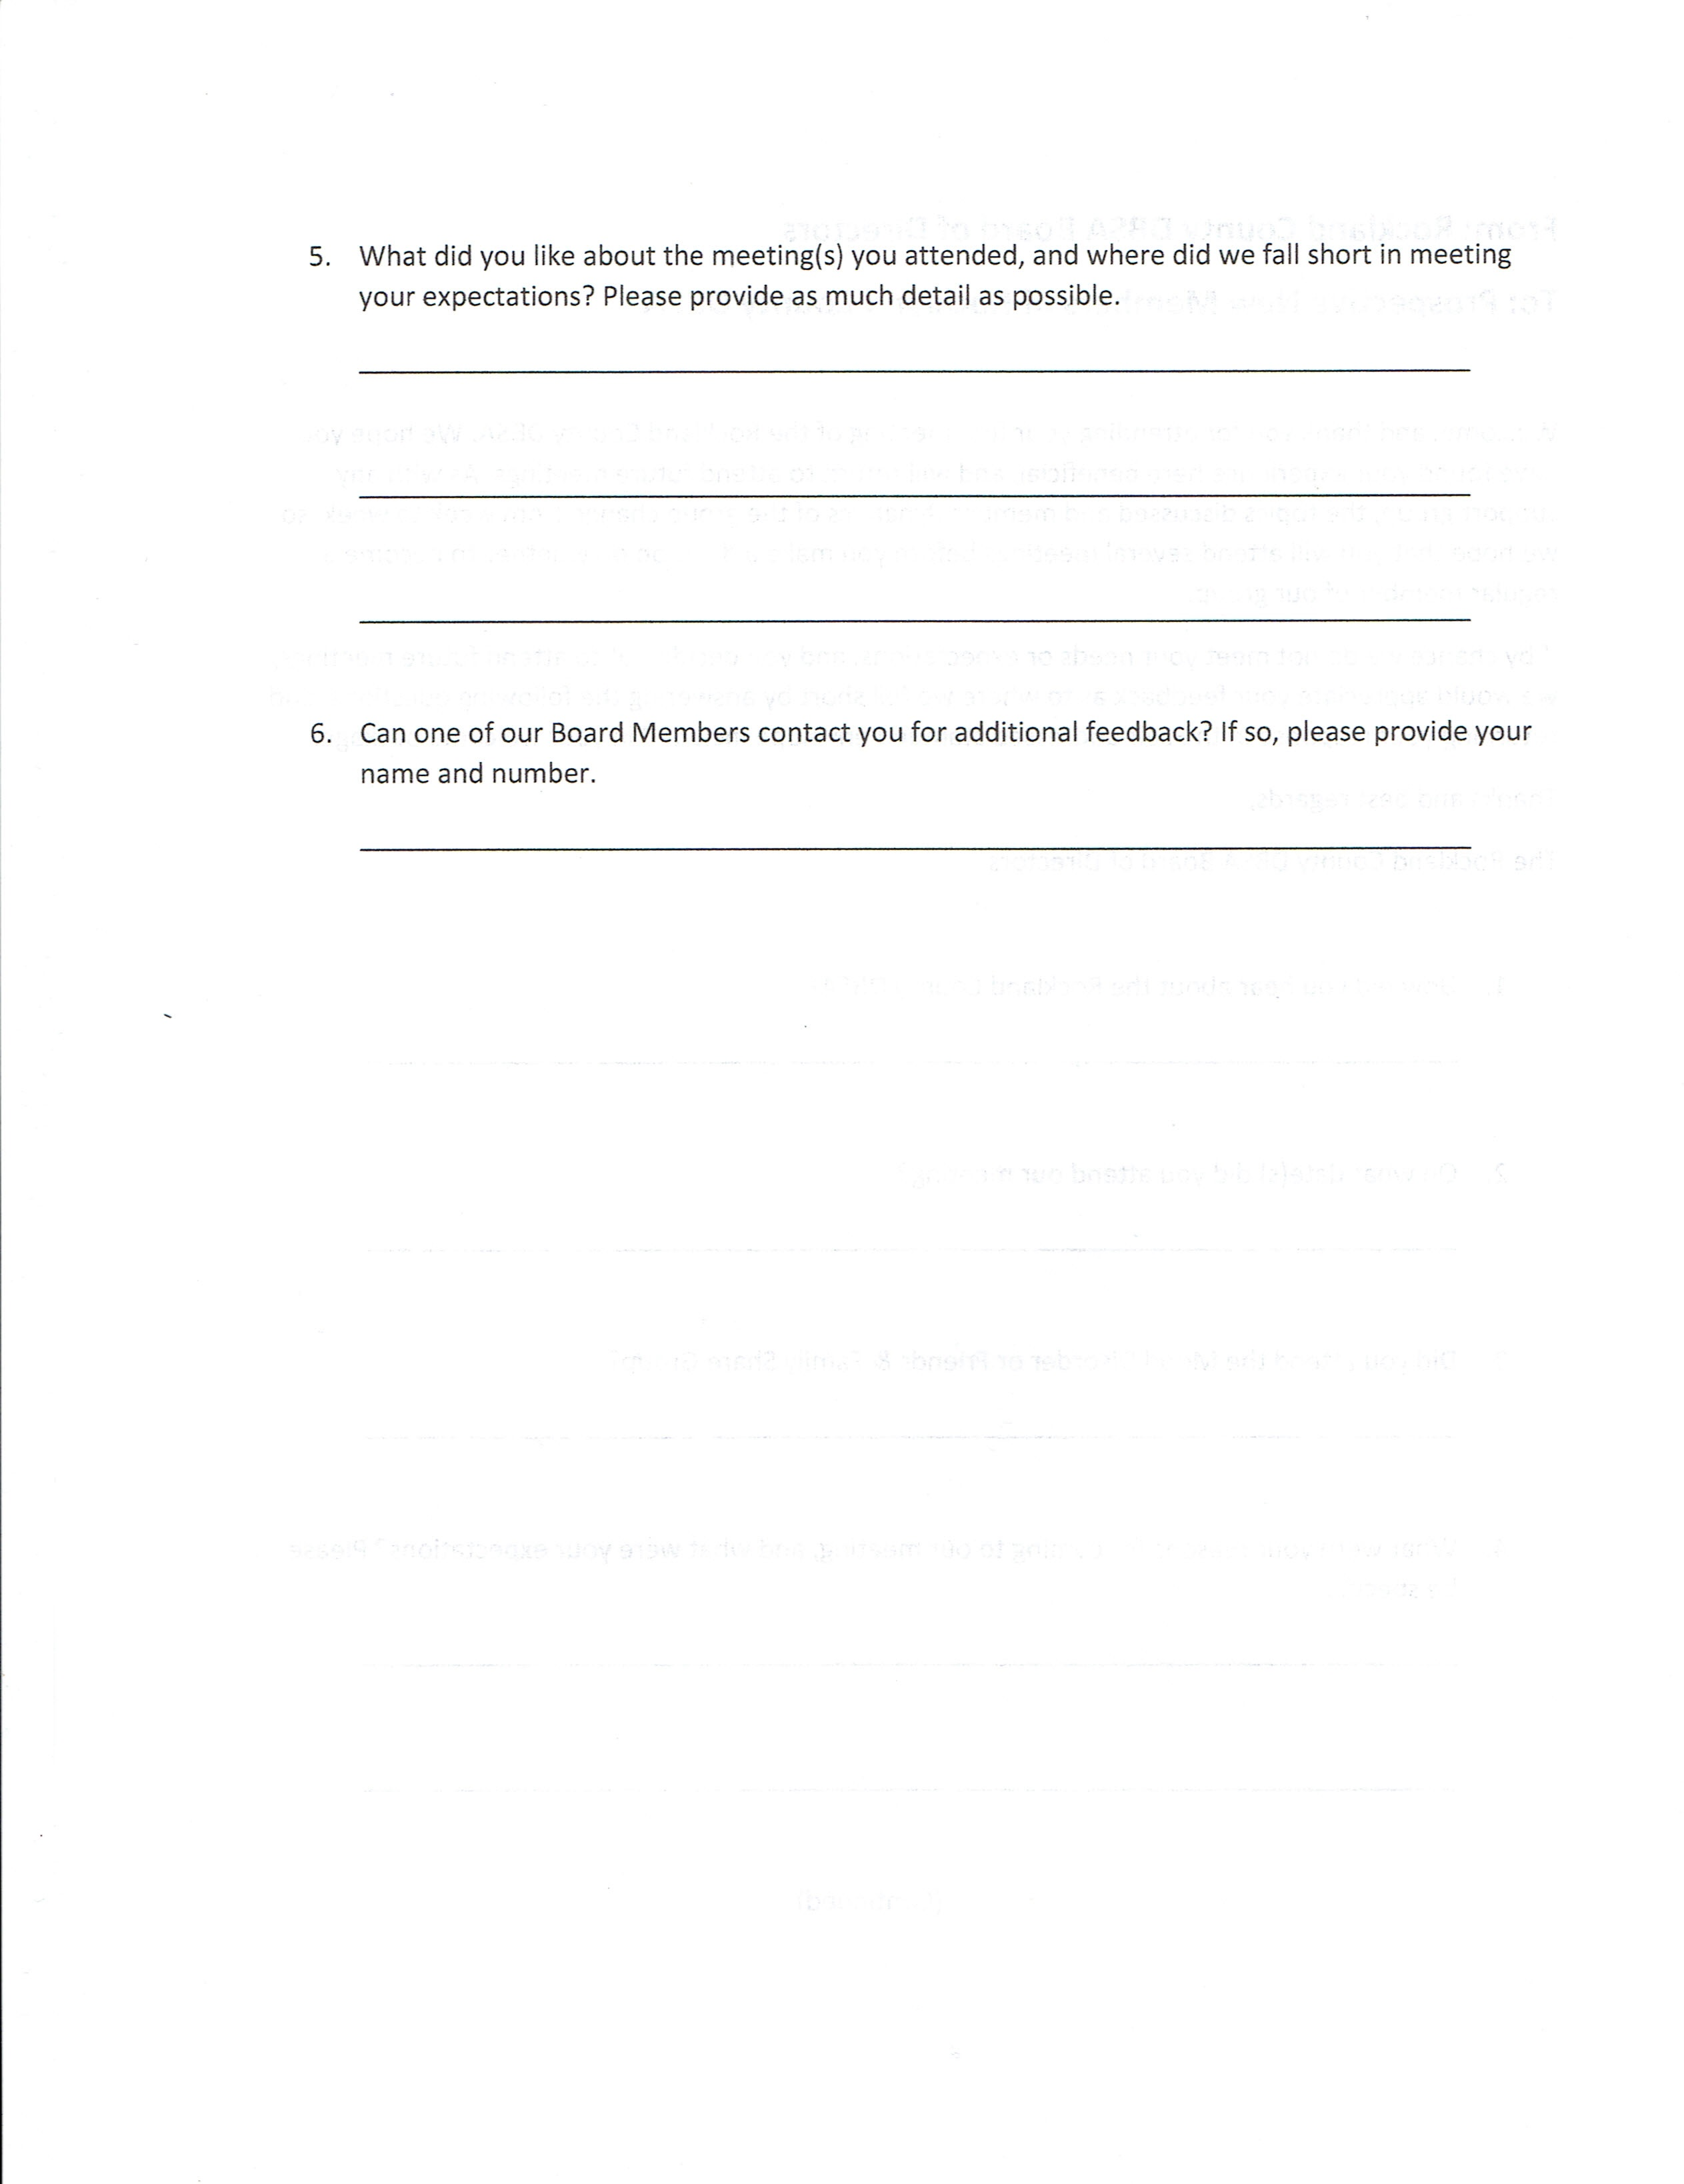 new member survey pg 2